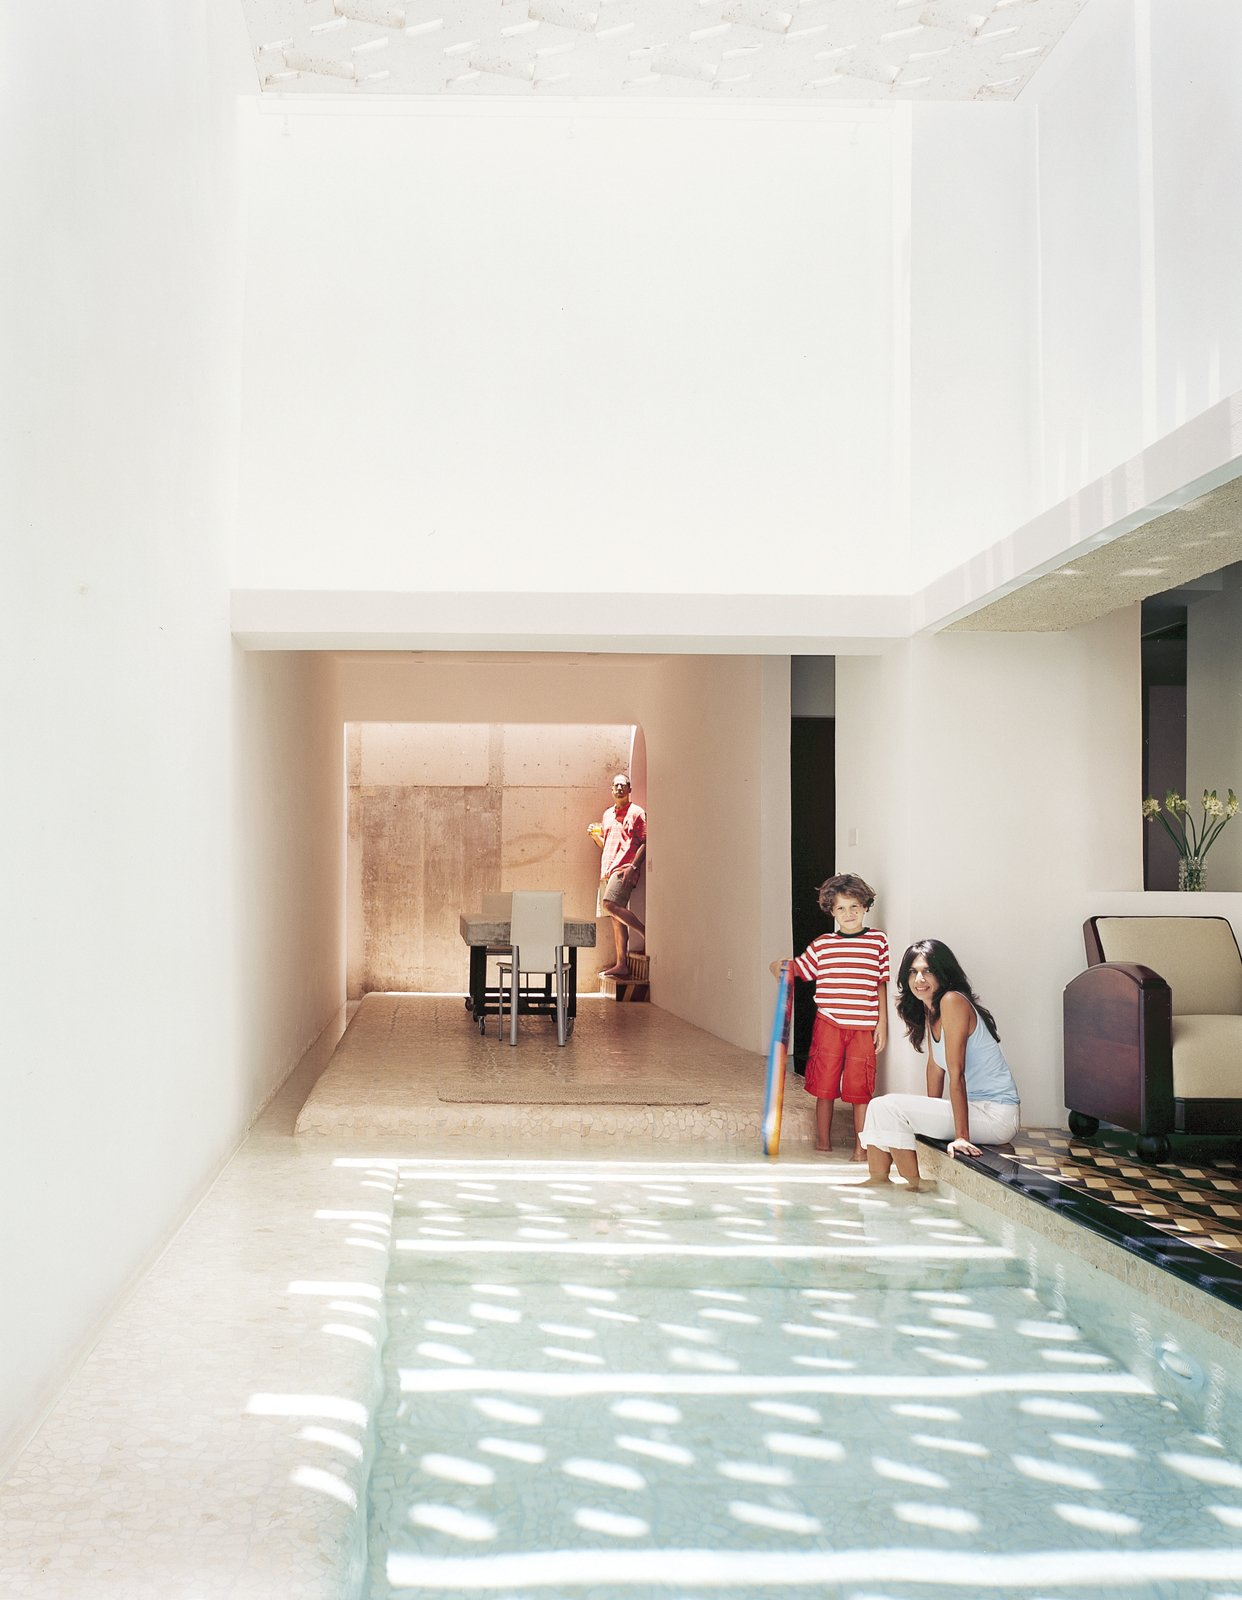 The dining area feels like an extension of the pool, with water channels on two sides. 12 Perfect Plunge Pools For Your Small Outdoor Space - Photo 8 of 13